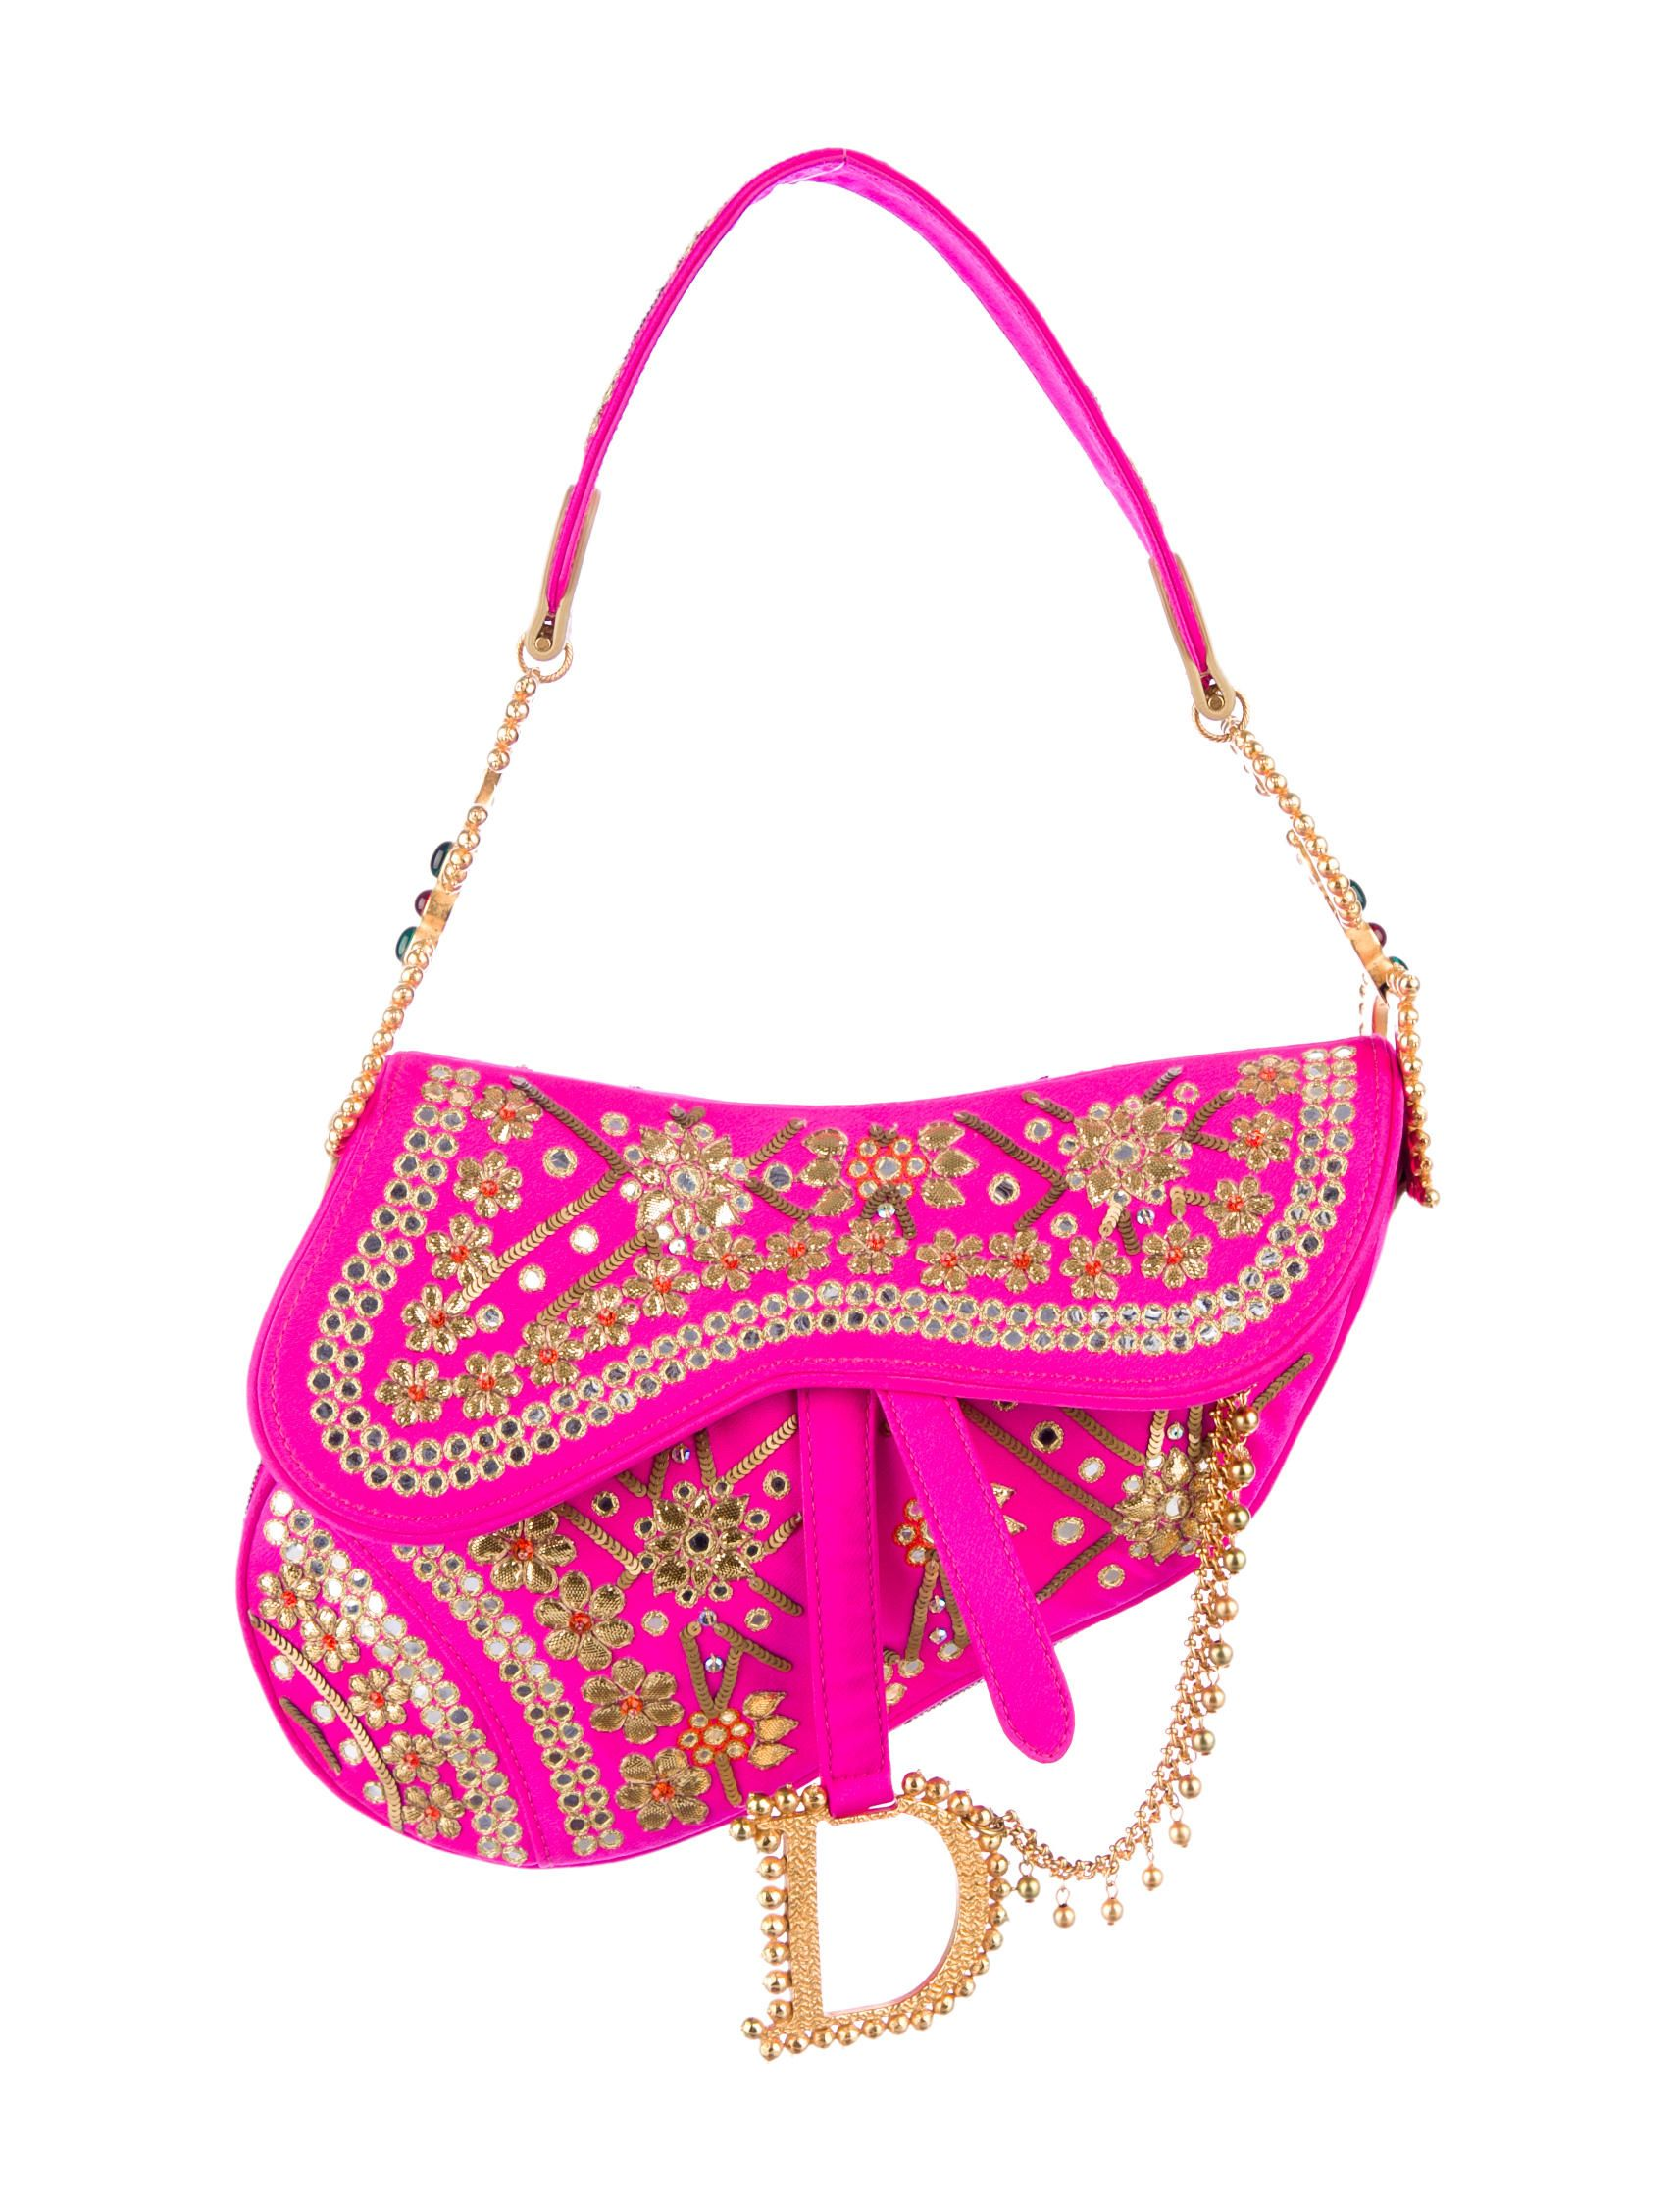 Neon pink Sari inspired Christian Dior Saddle bag with gold-tone hardware bafab81773e0c